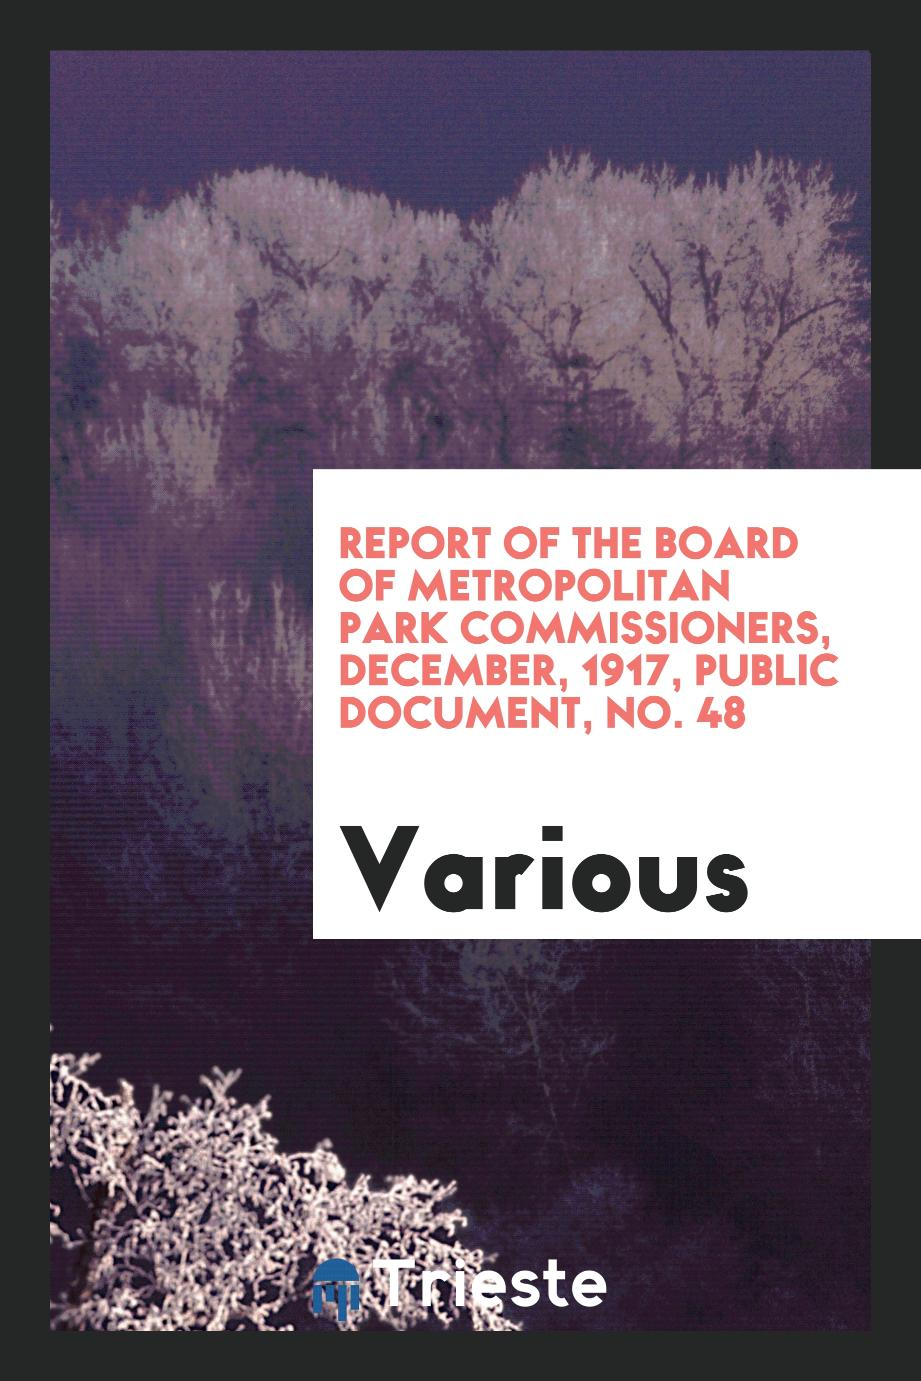 Report of the Board of Metropolitan Park Commissioners, December, 1917, Public document, No. 48